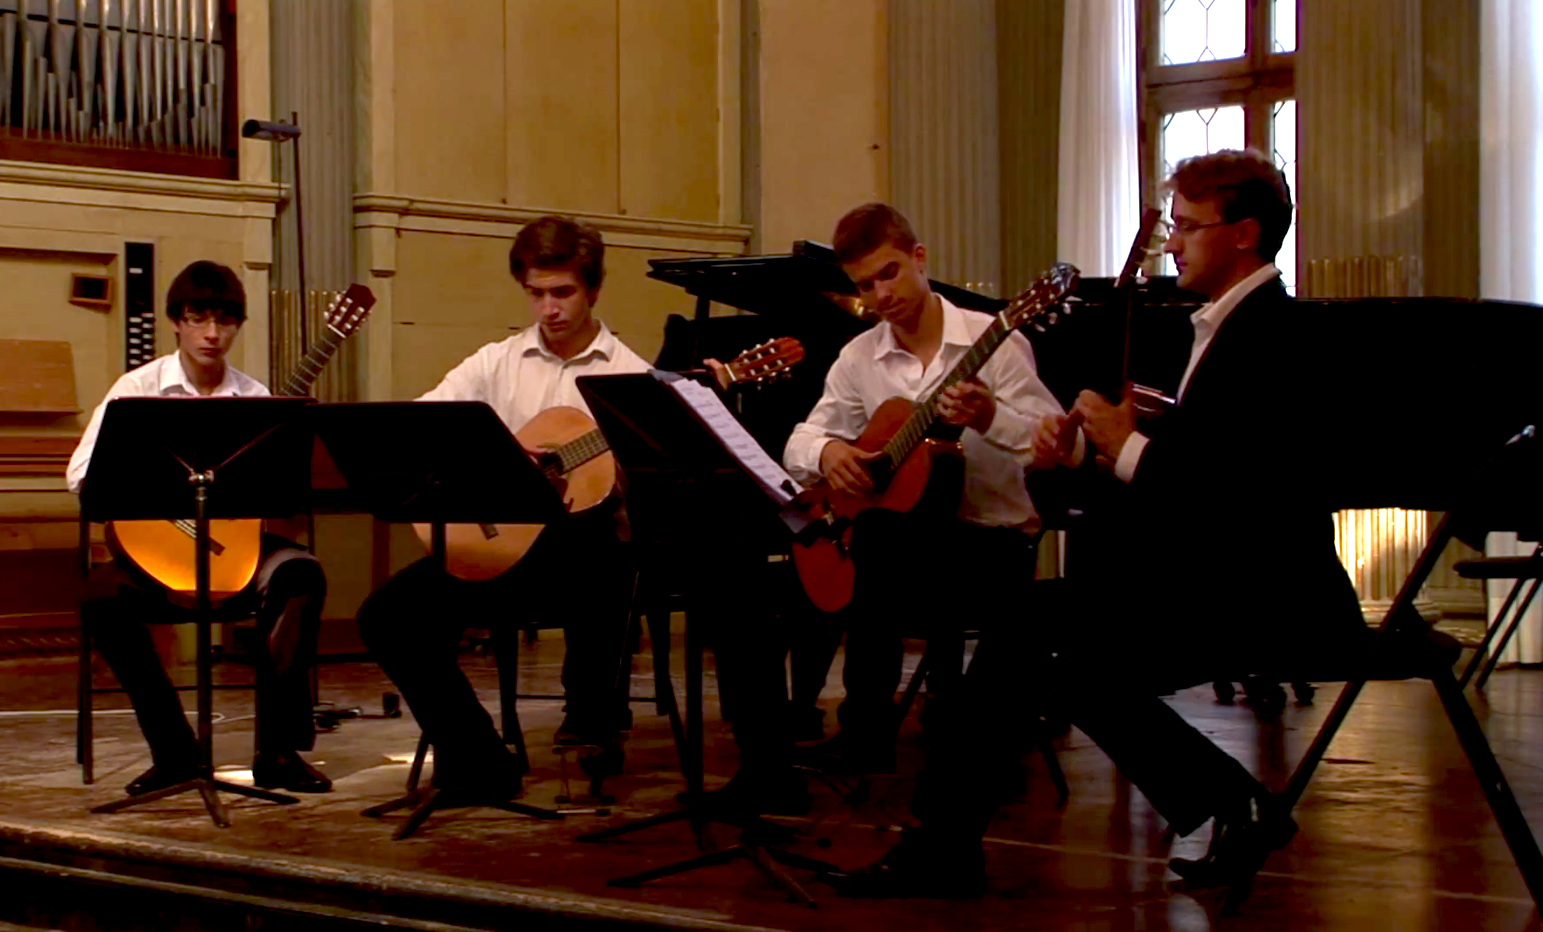 Working with students in a classical guitar ensemble at Conservatorio Benedetto Marcello in Venice, Italy